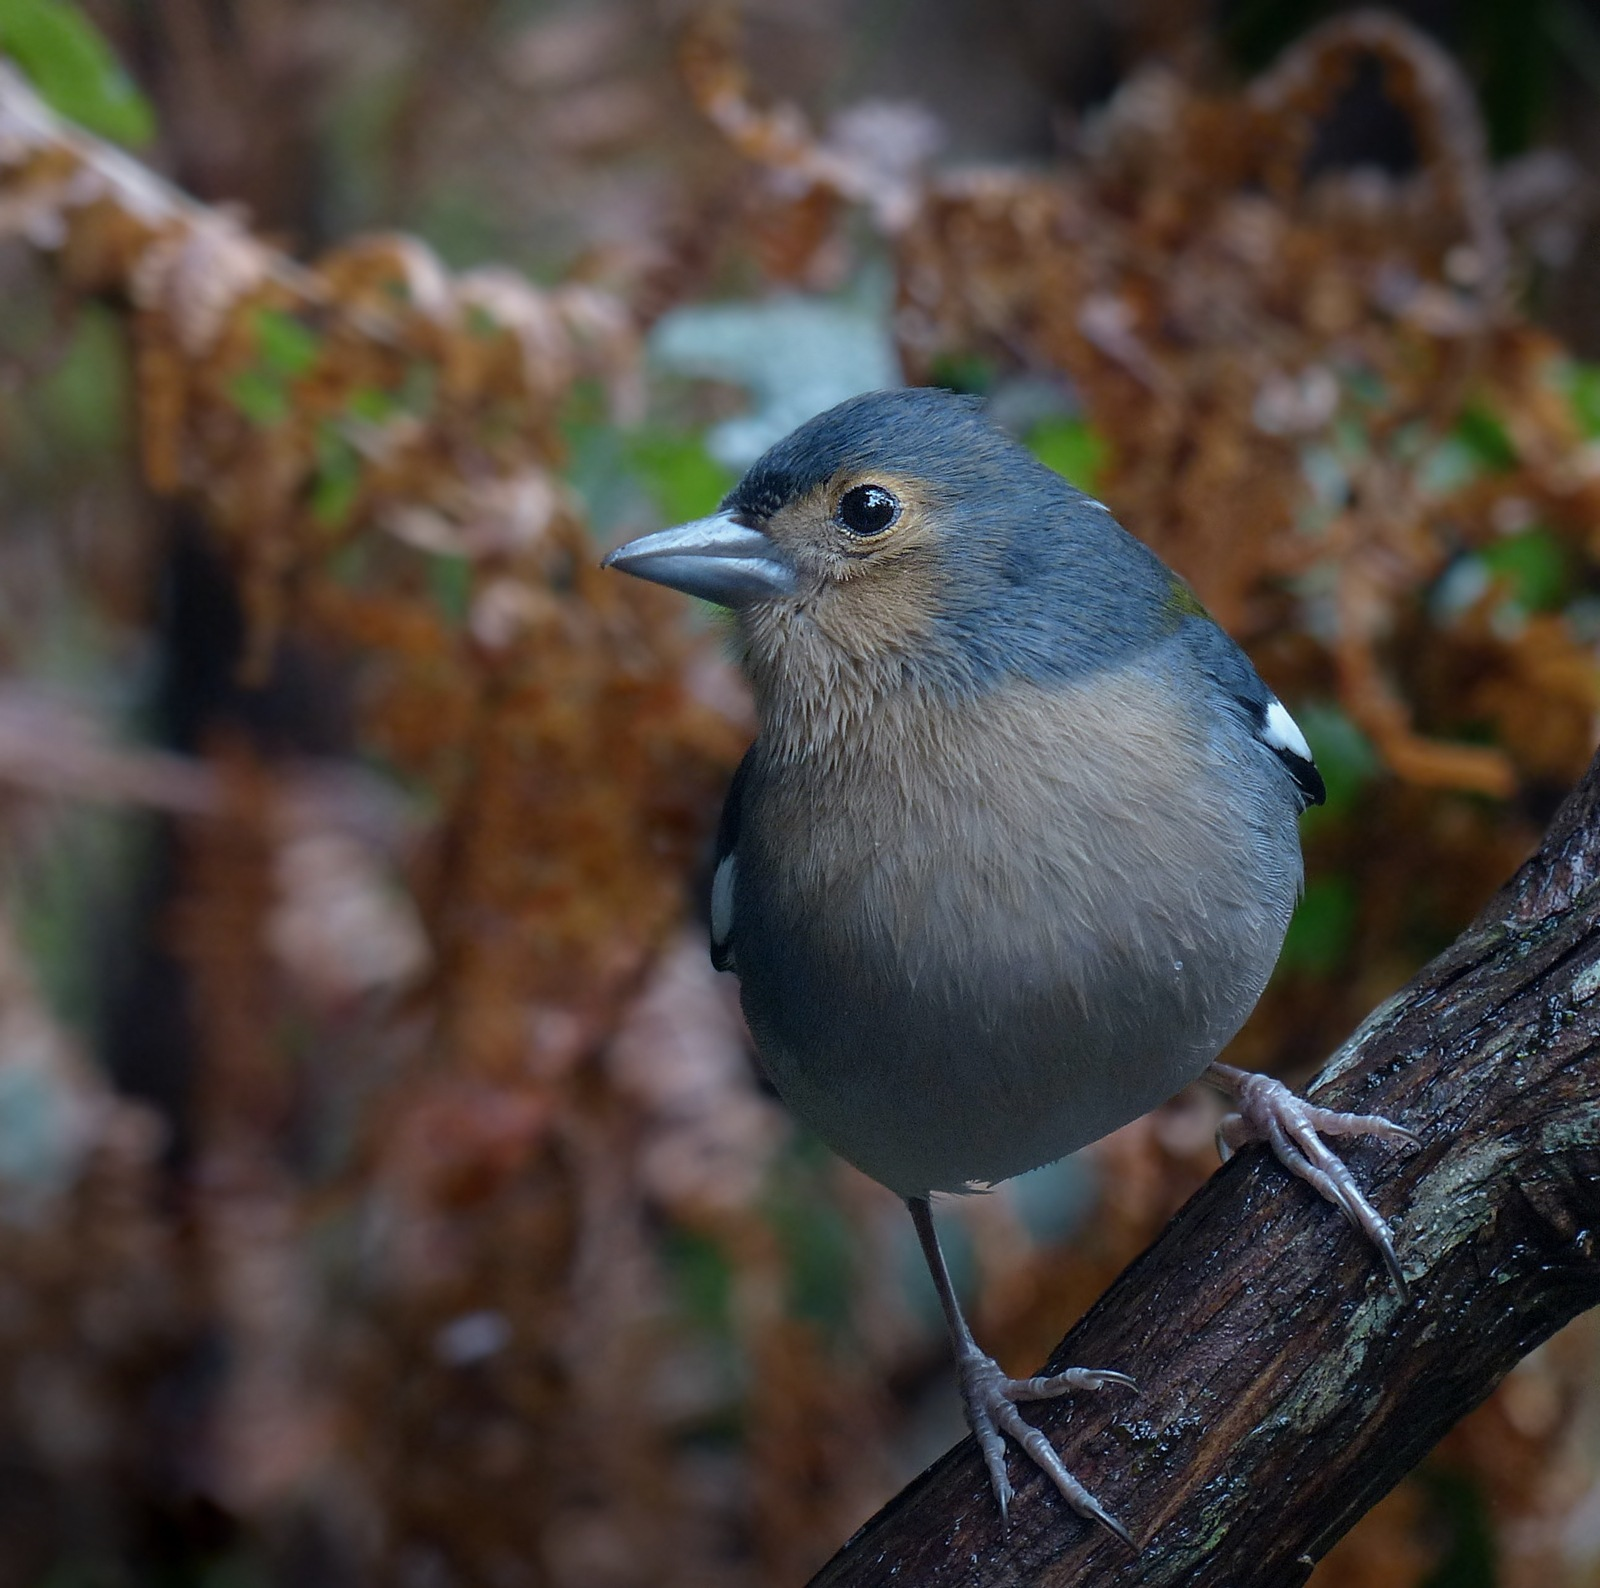 The chaffinch by kaskap444